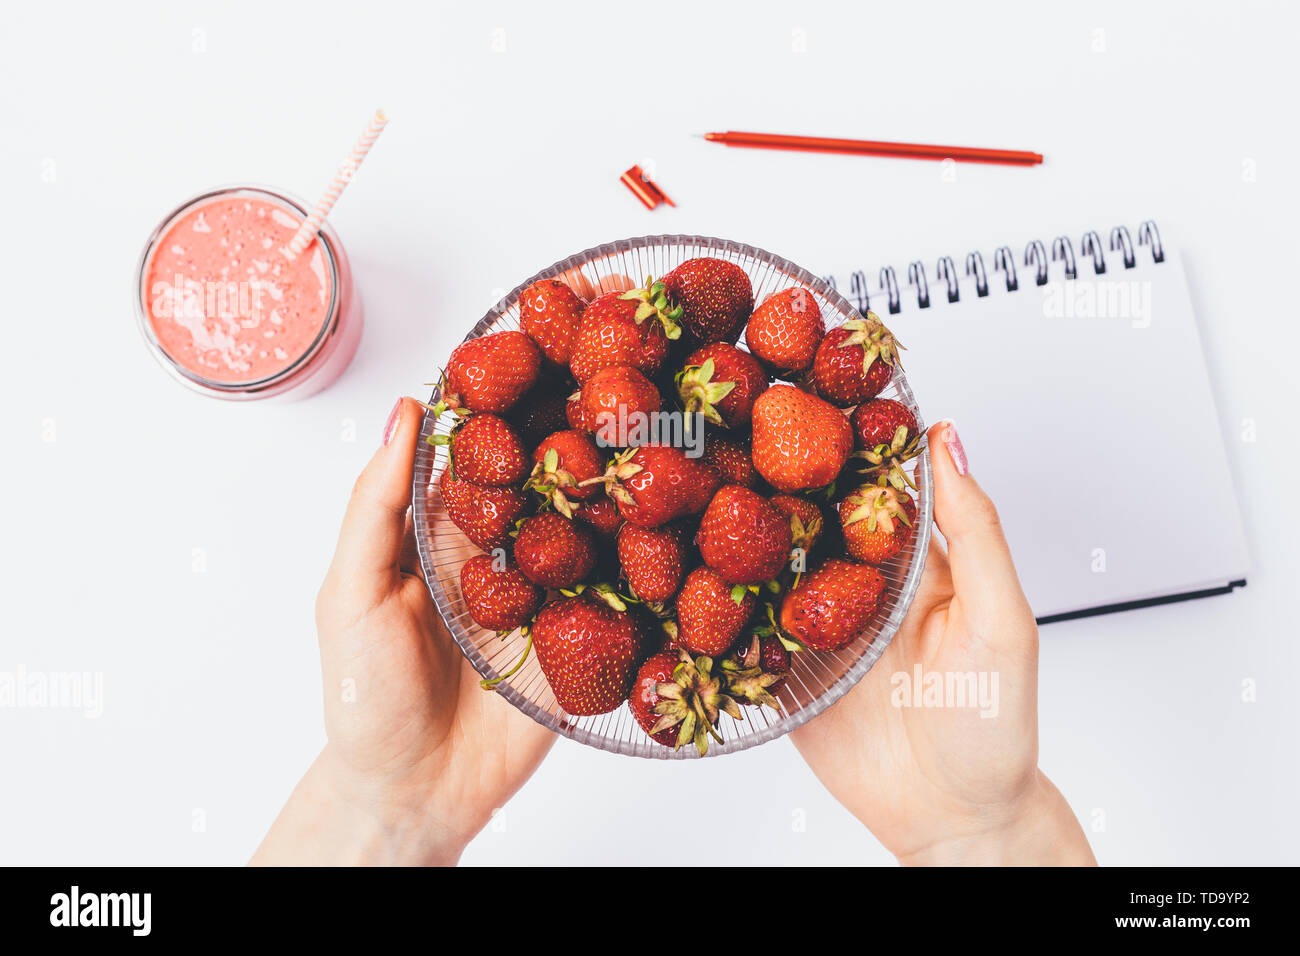 Woman's hands holding bowl of fresh strawberries above white table with empty notebook and smoothie, flat lay. - Stock Image